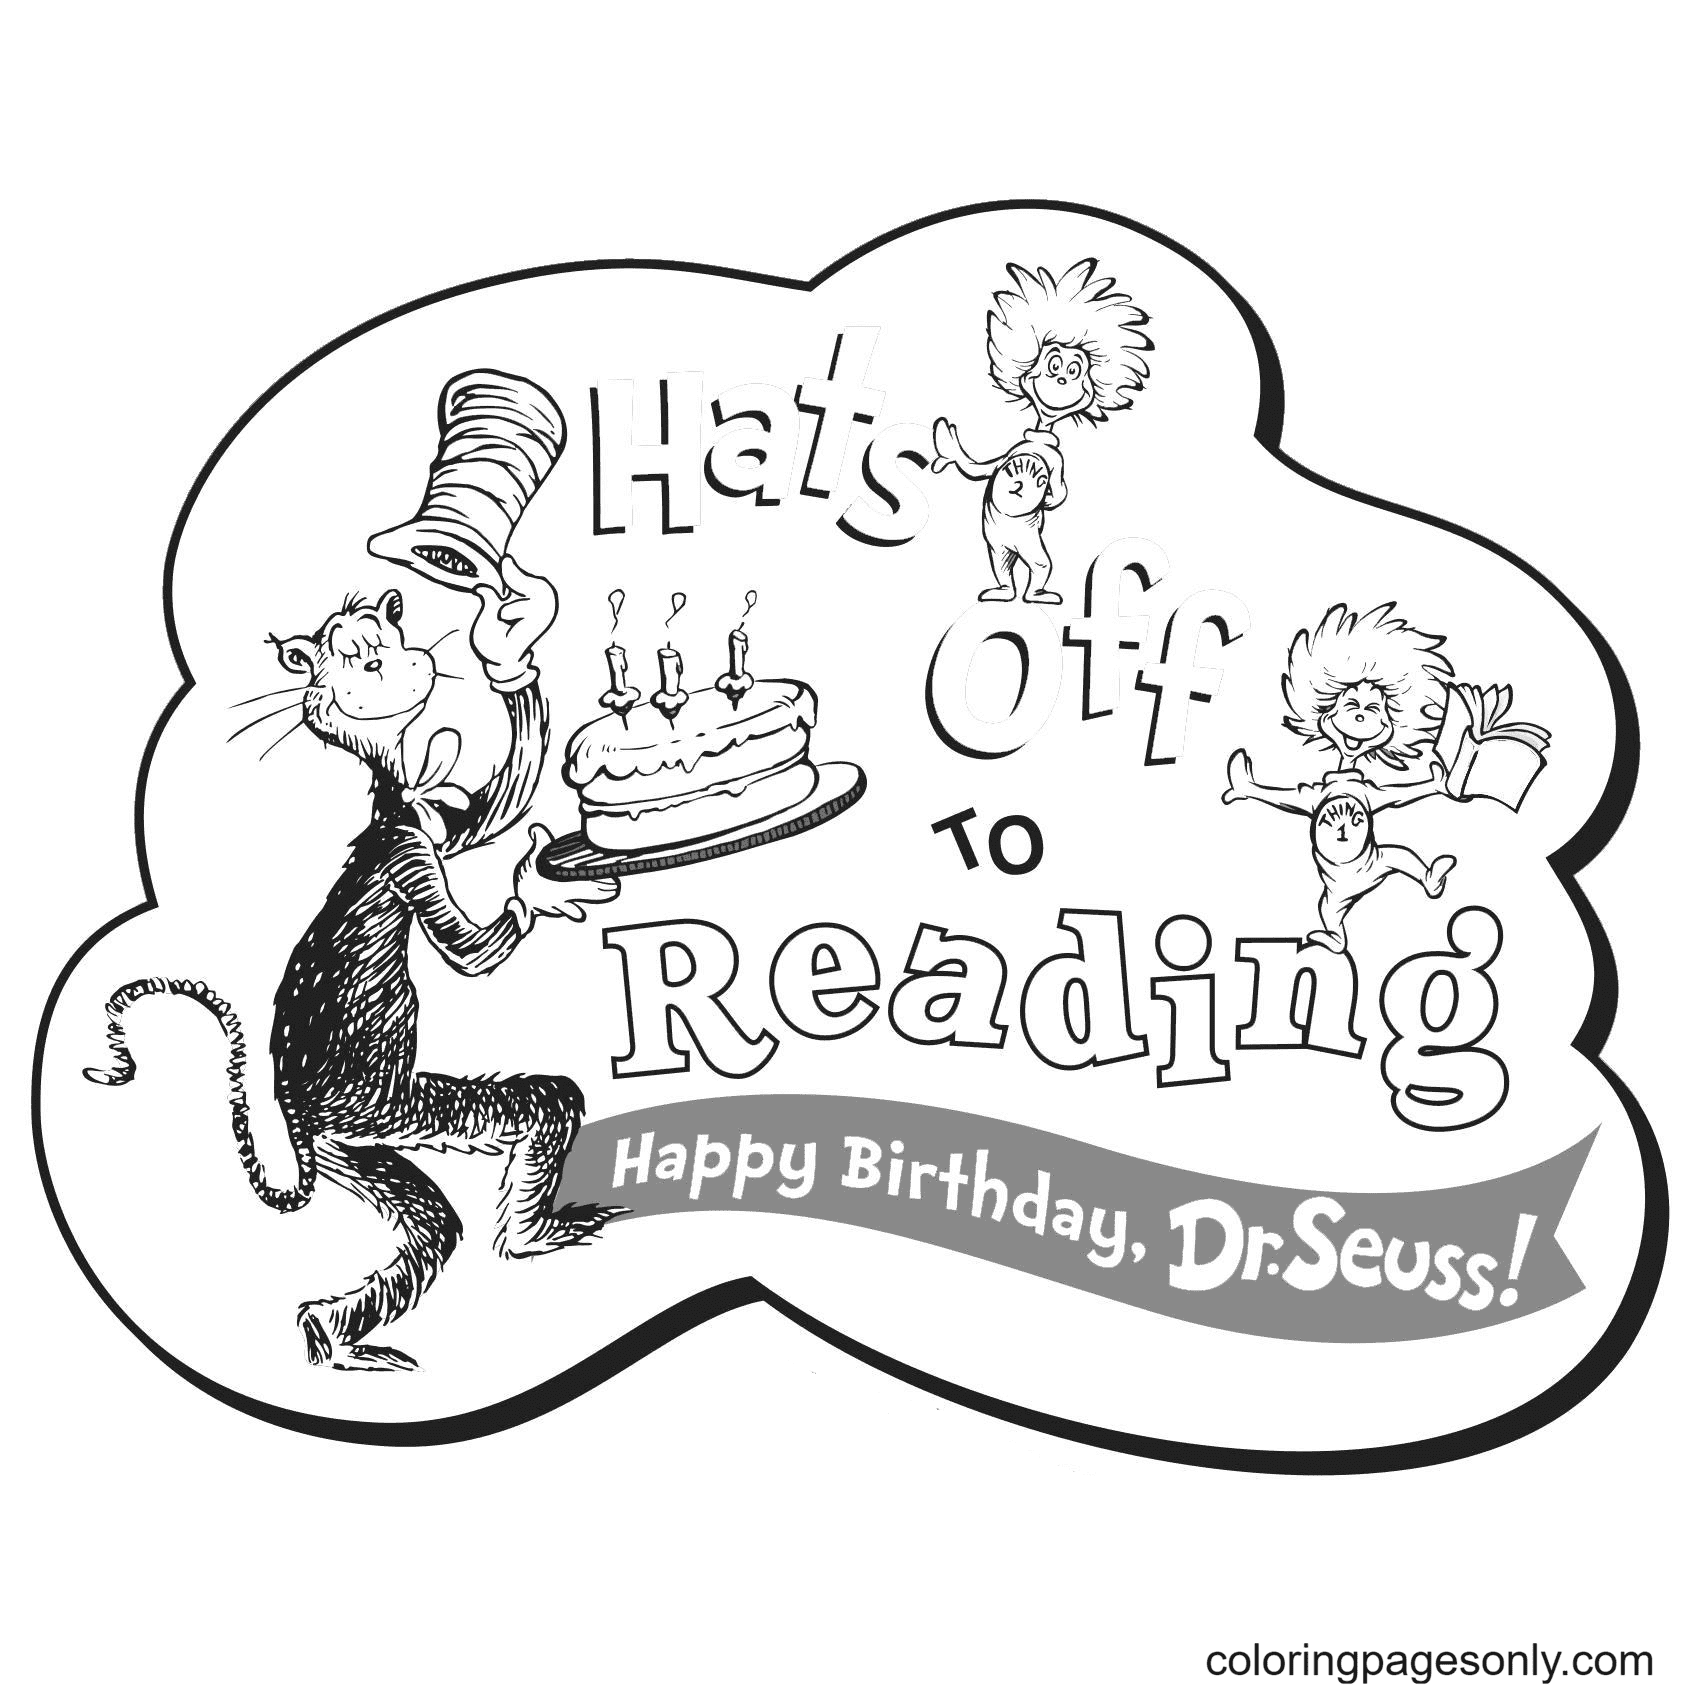 Happy Birthday Dr Seuss Hats off to Reading Coloring Page